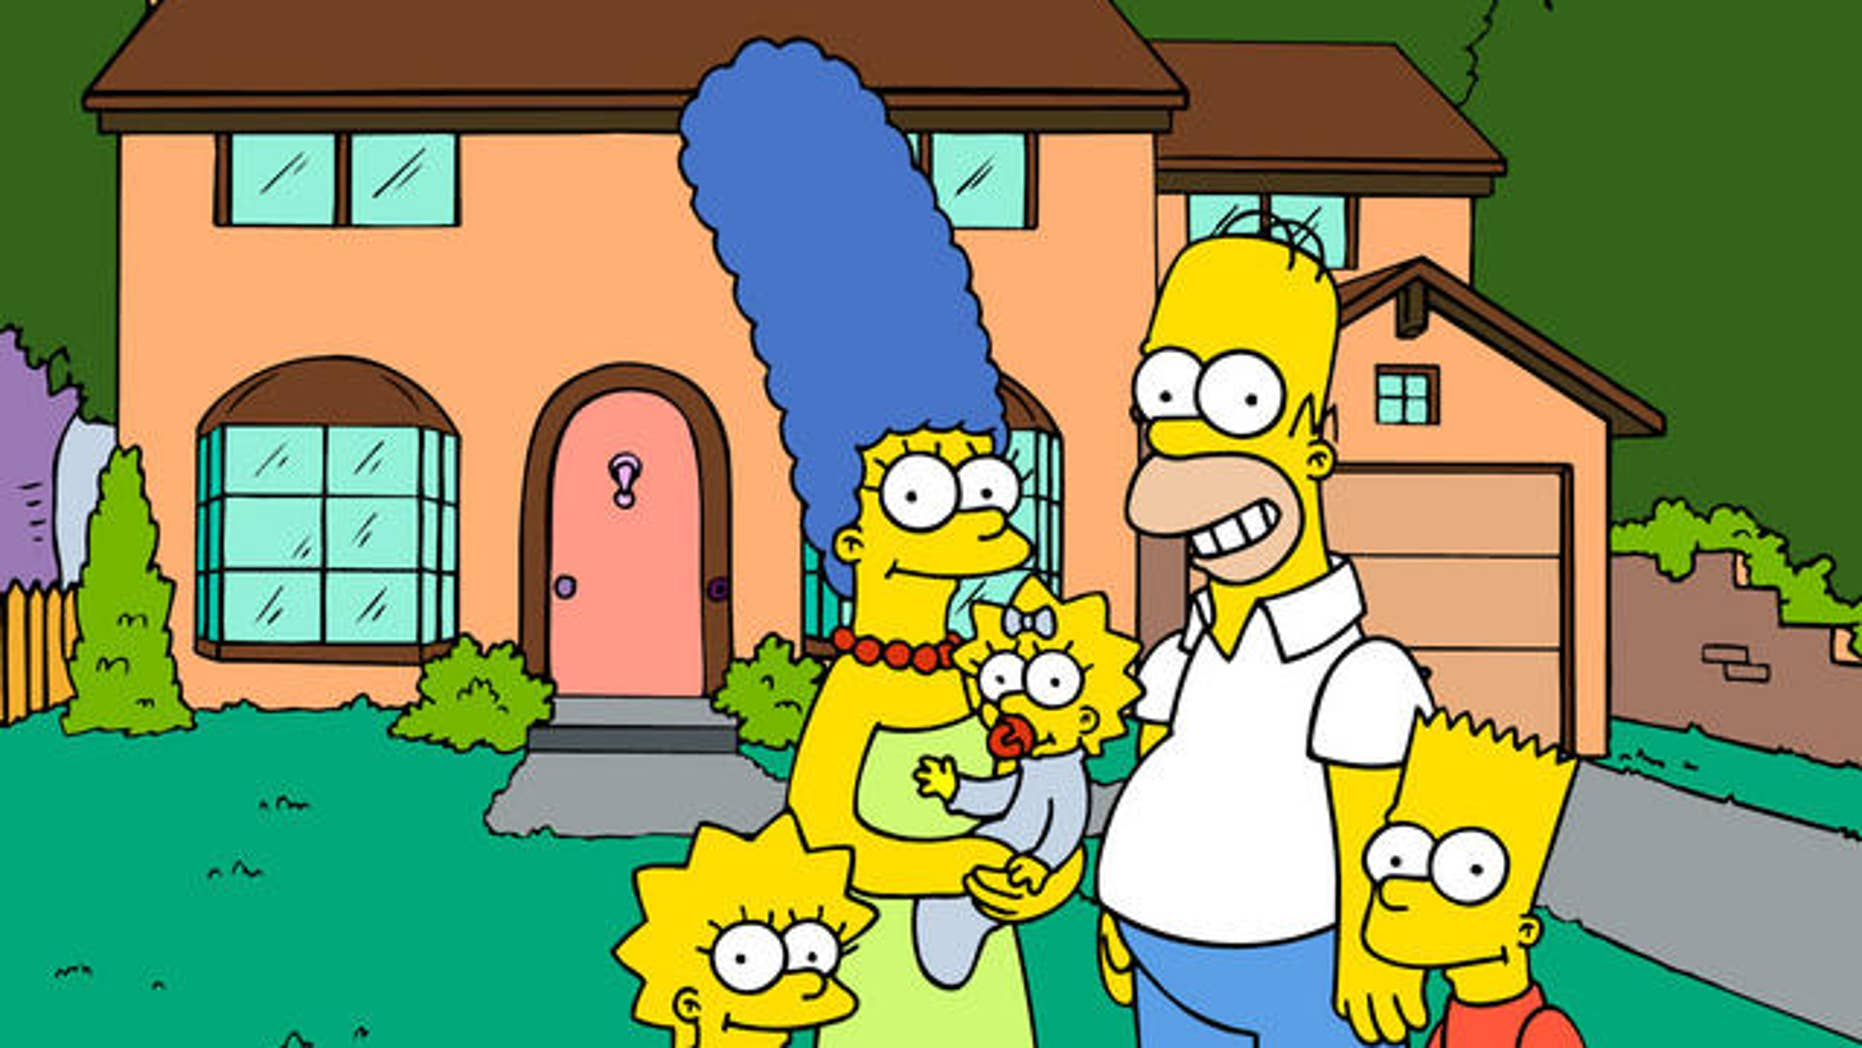 'The Simpsons' movie about the famous cartoon family came out in theaters in 2007.